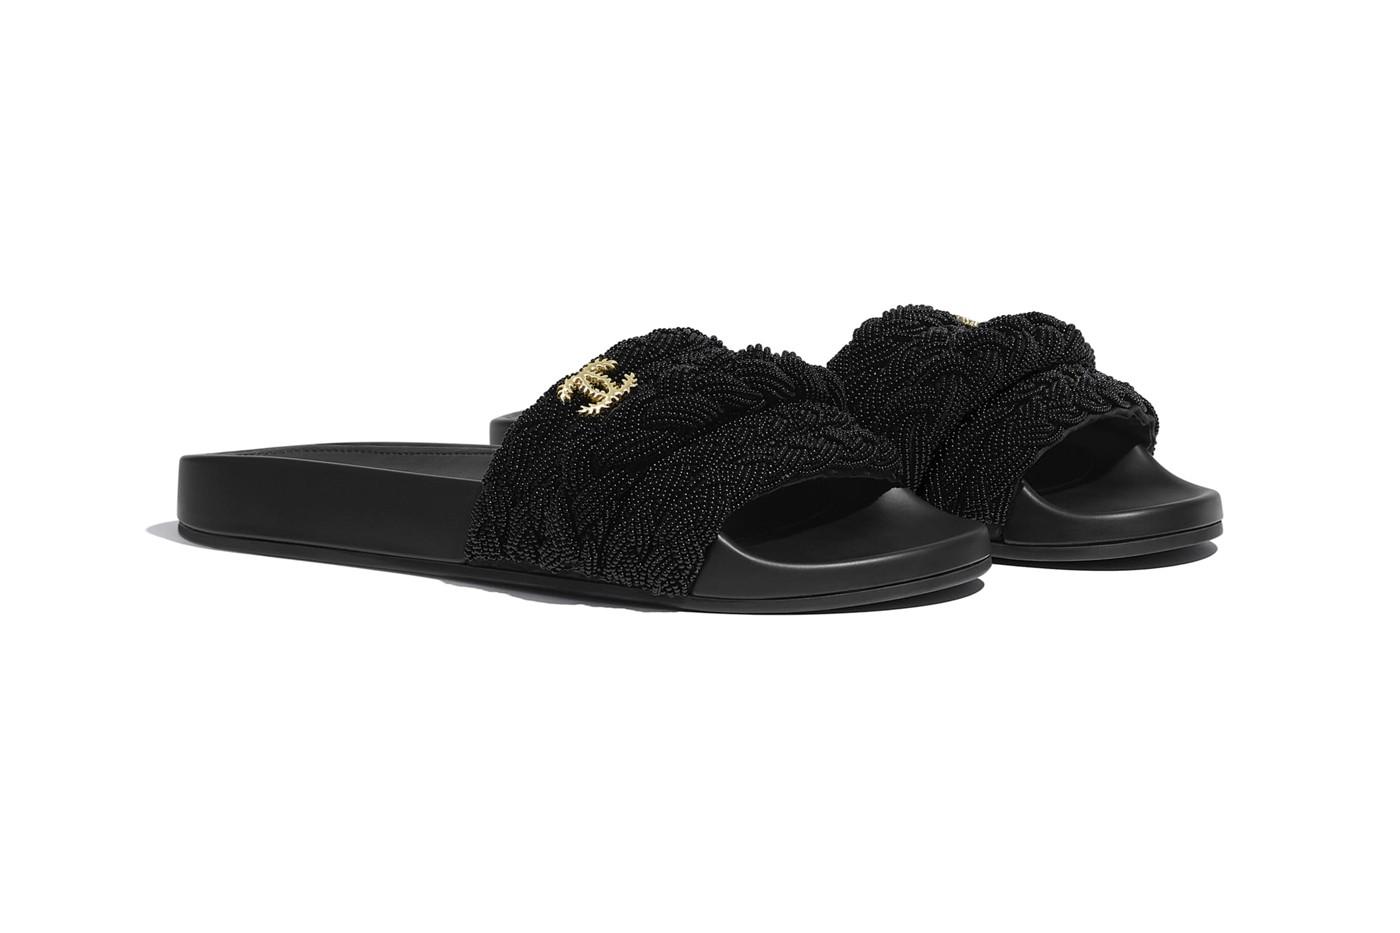 Chanel Blacked Out Luxurious Slides